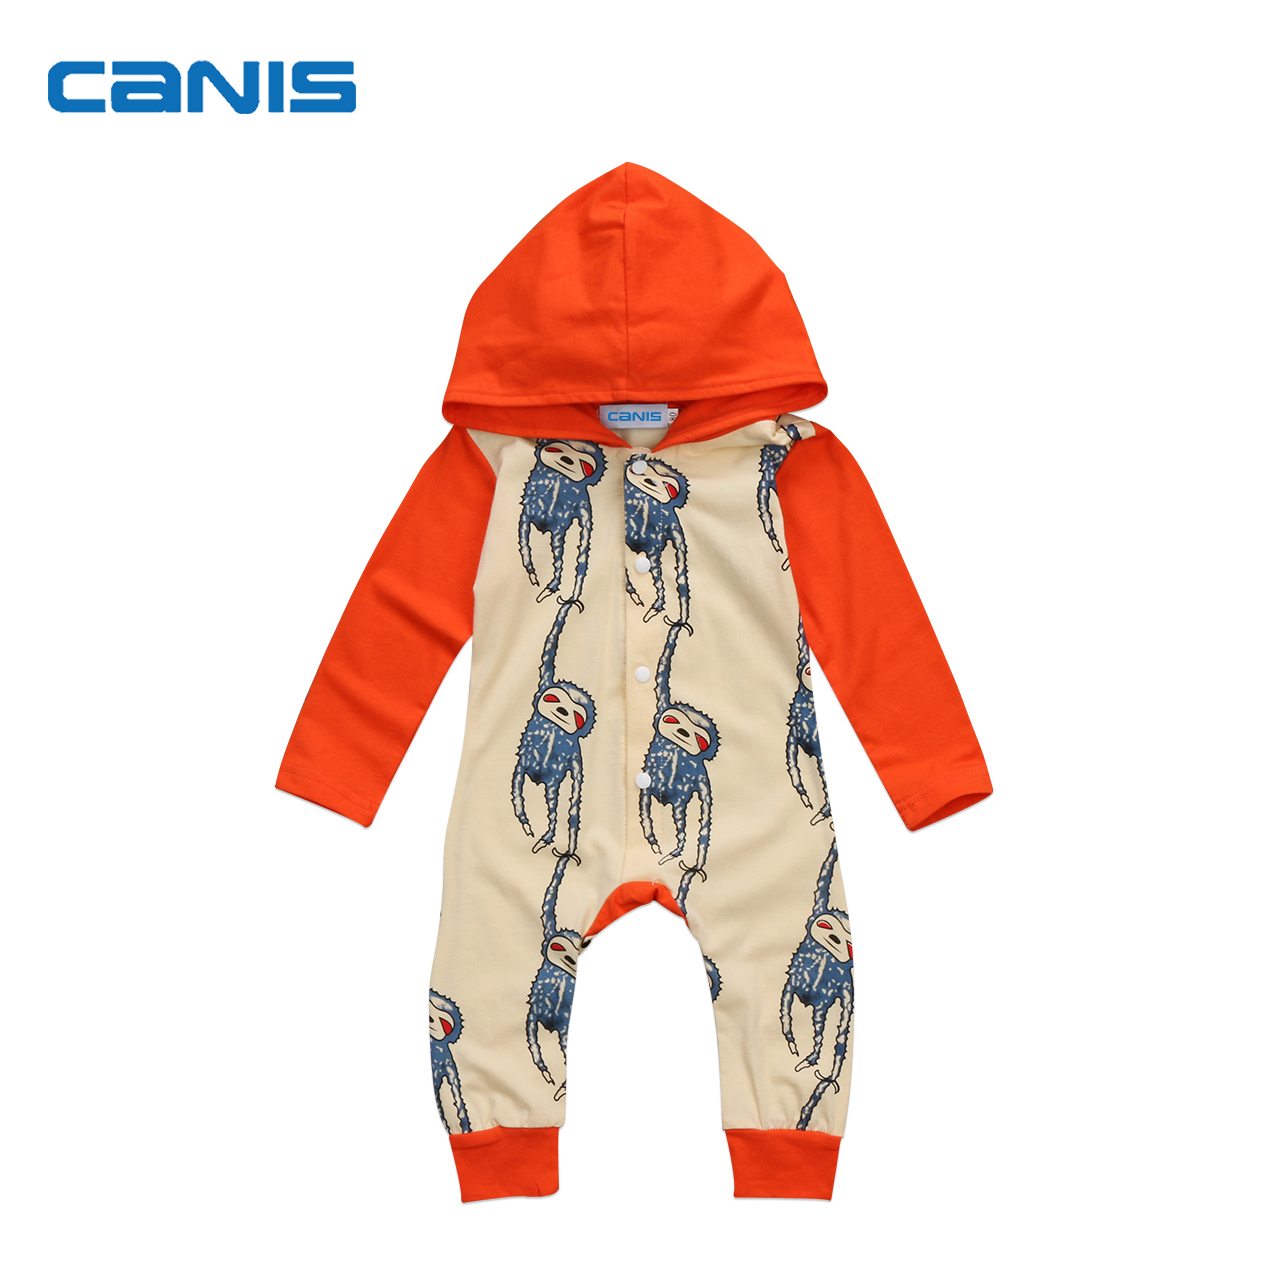 Hot Cute Newborn Baby Boy Girl Hooded Romper Cartoon Print Long Sleeve Monkey Jumpsuit Autumn Toddler Baby Kids Clothes Outfit